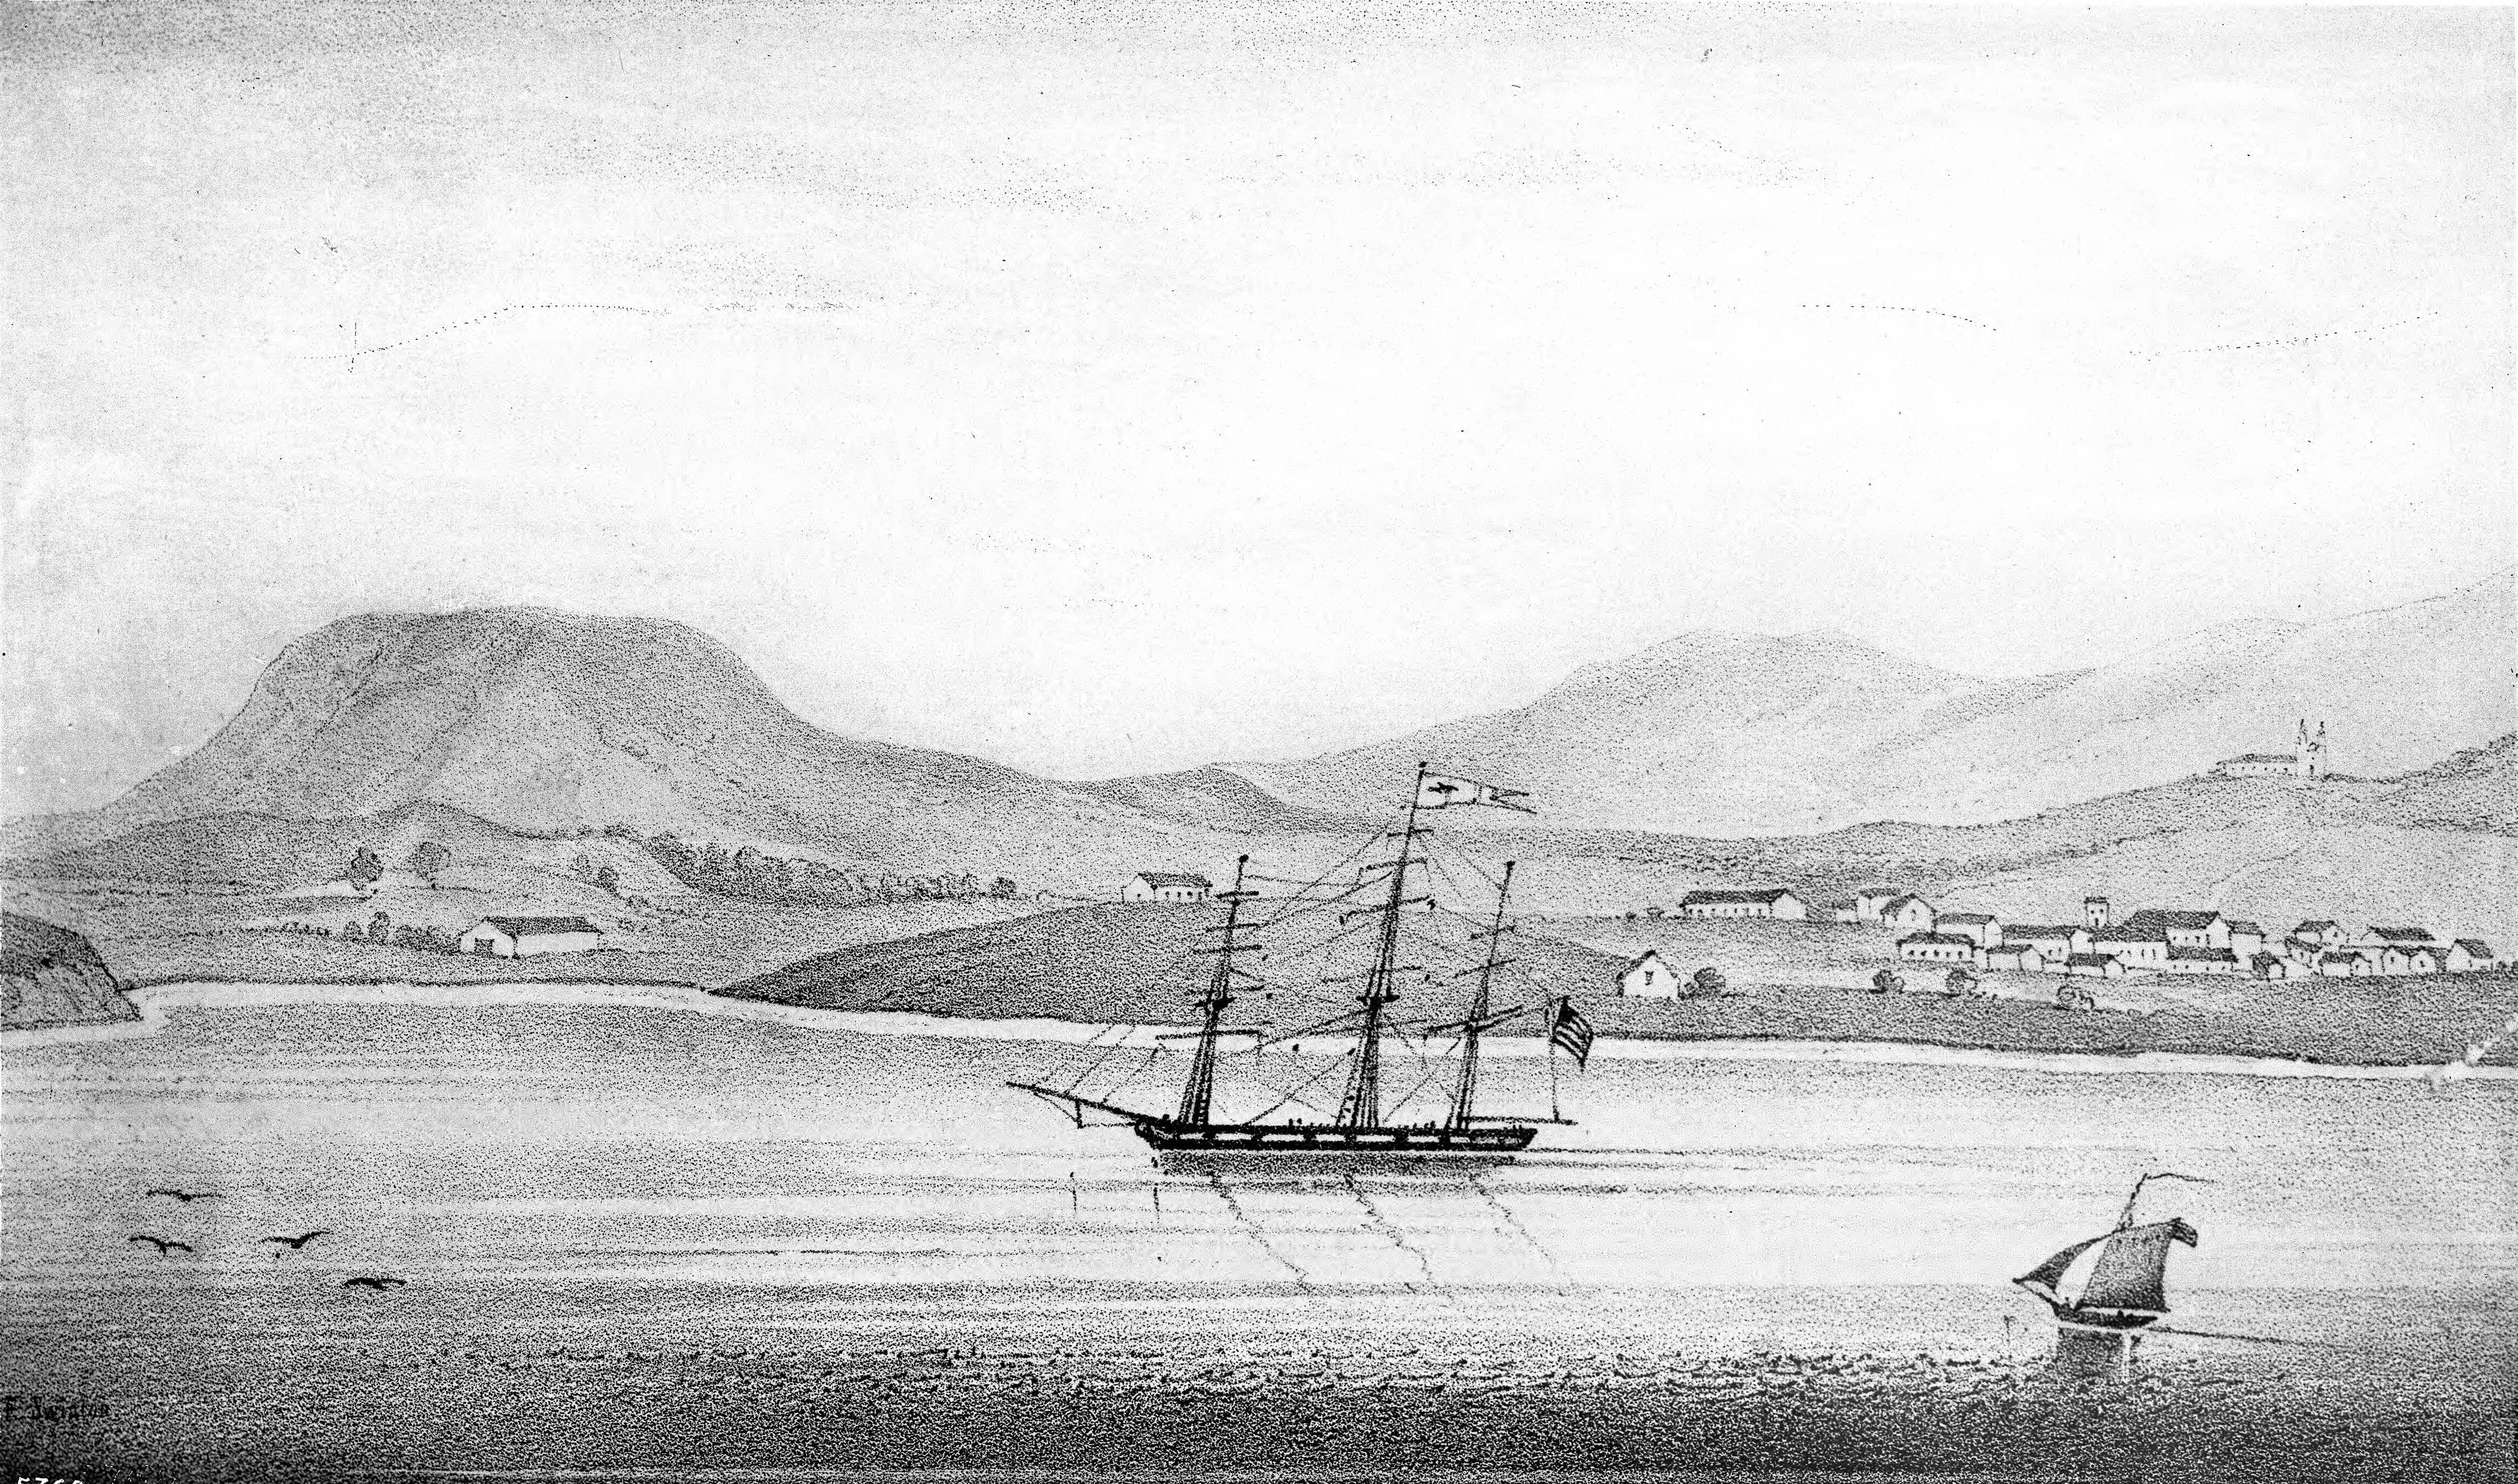 Sketch of town with ship in harbor.